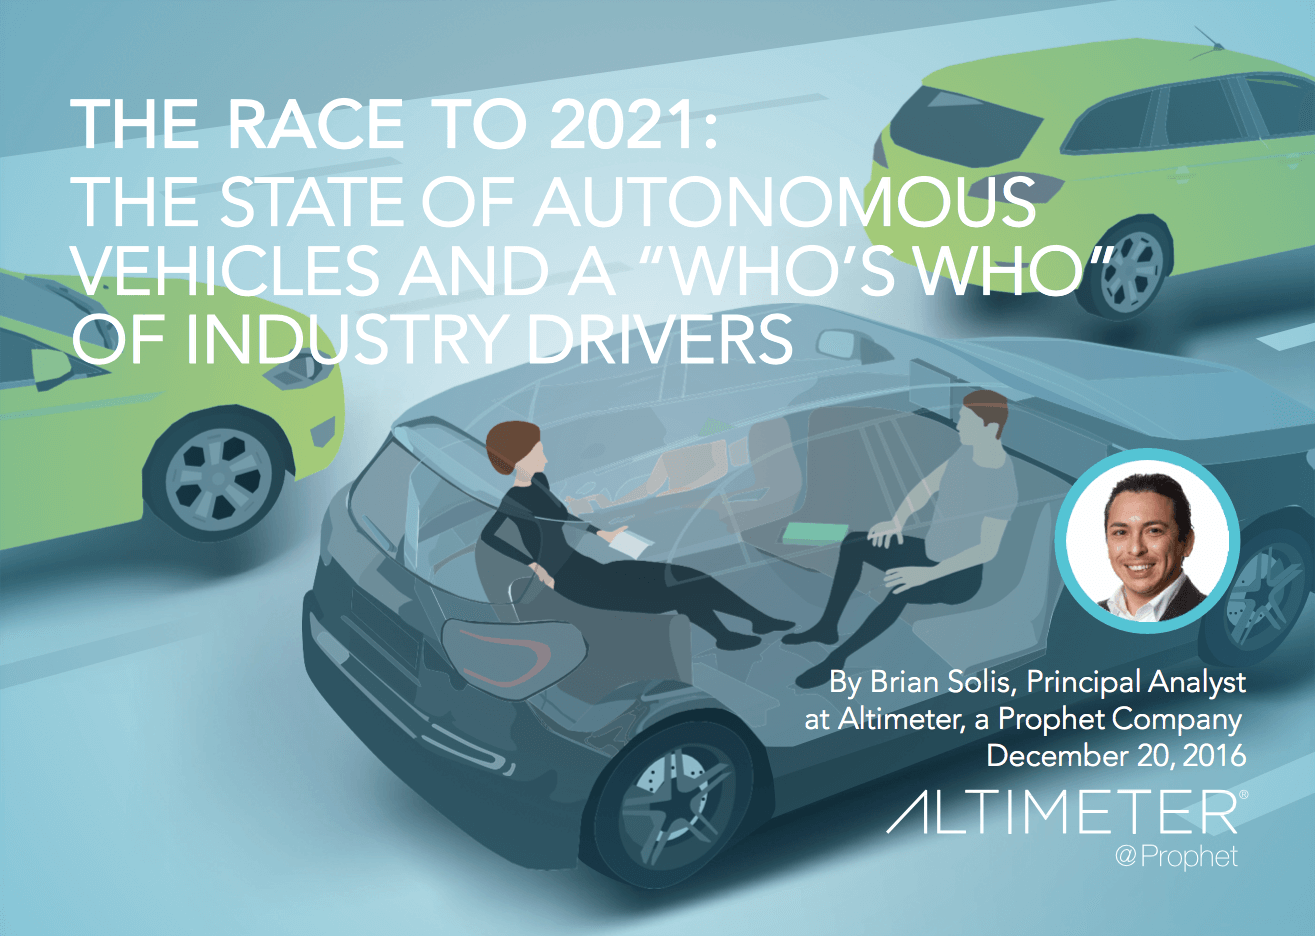 """The Race to 2021"", a report by Brian Solis on the state of autonomous vehicles."